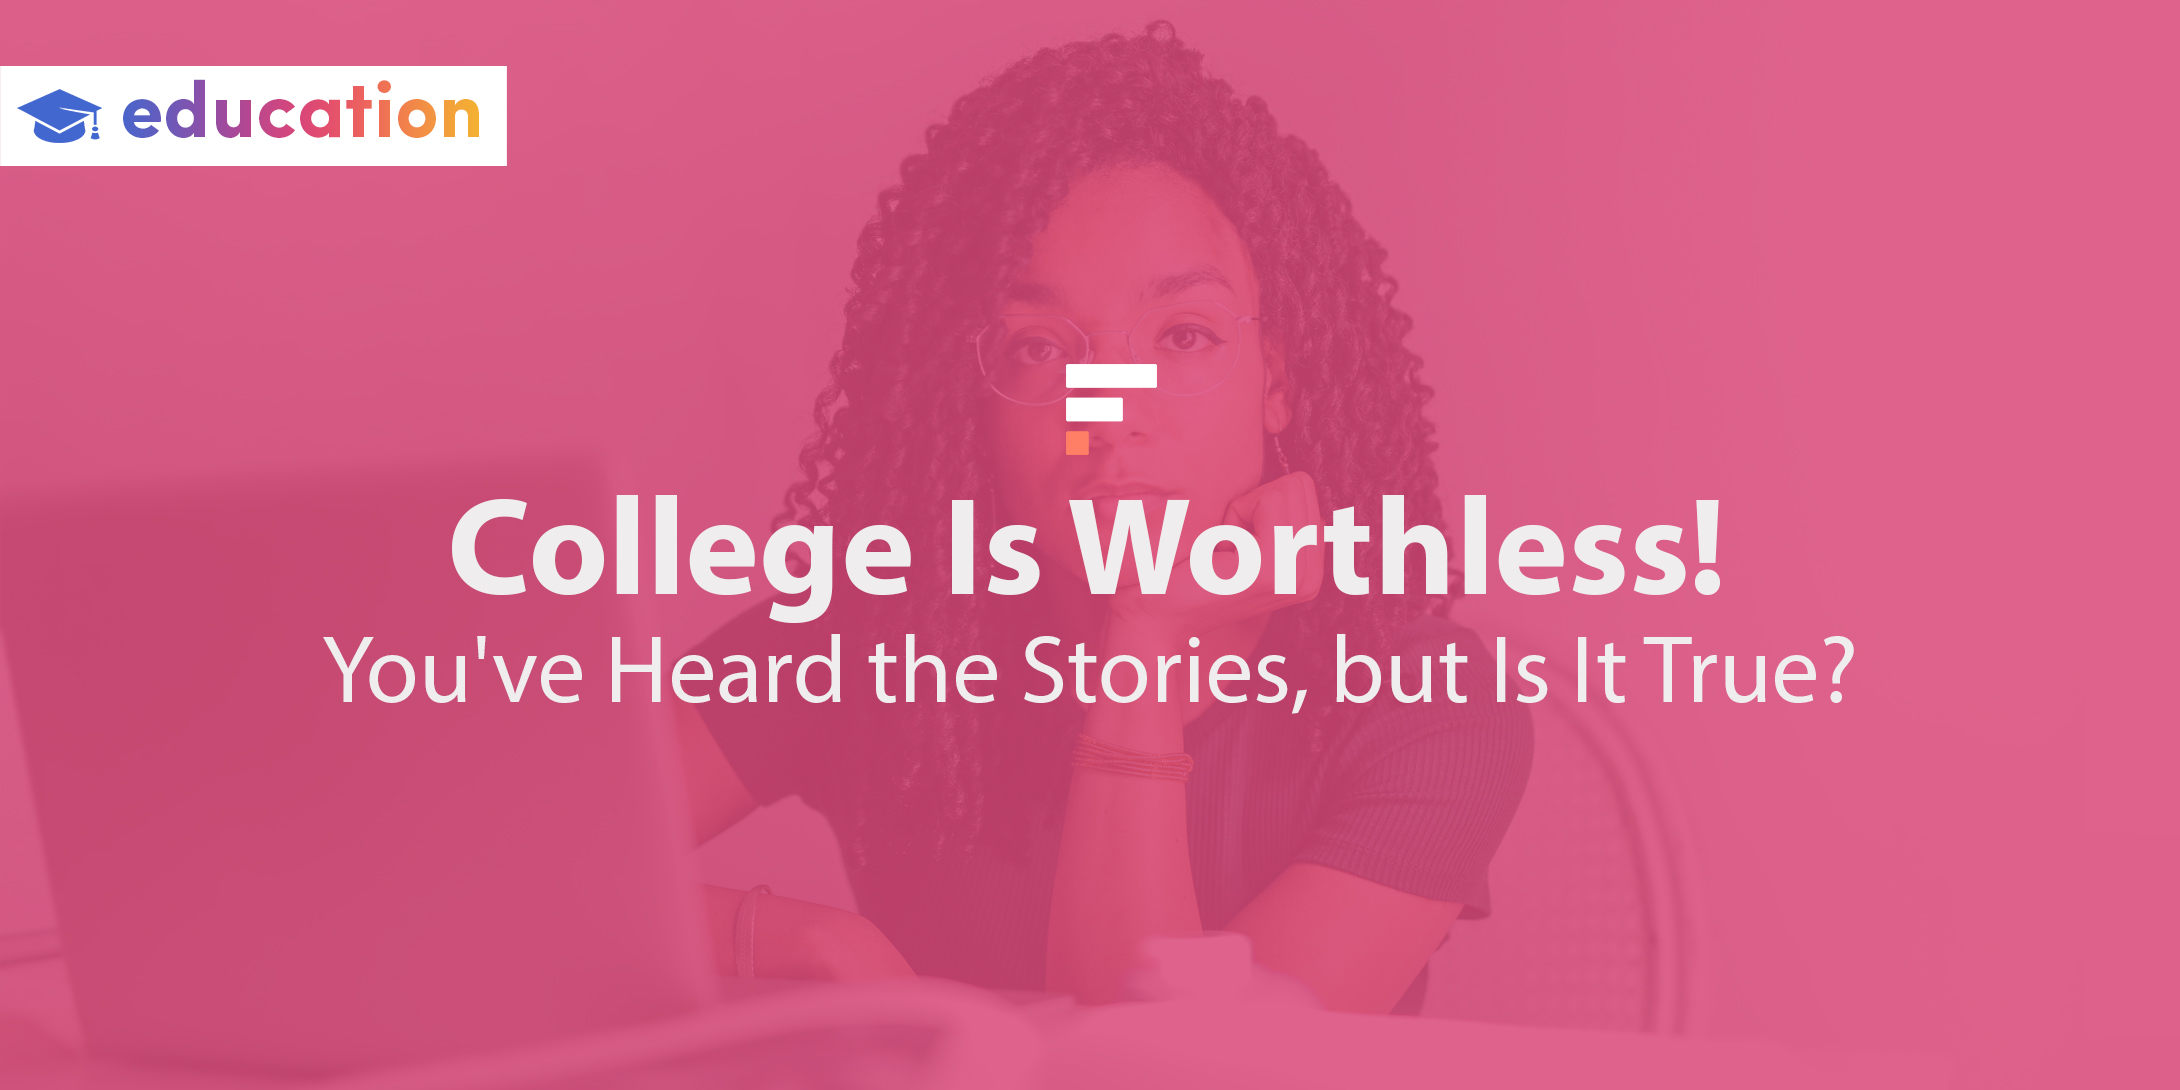 College is worthless